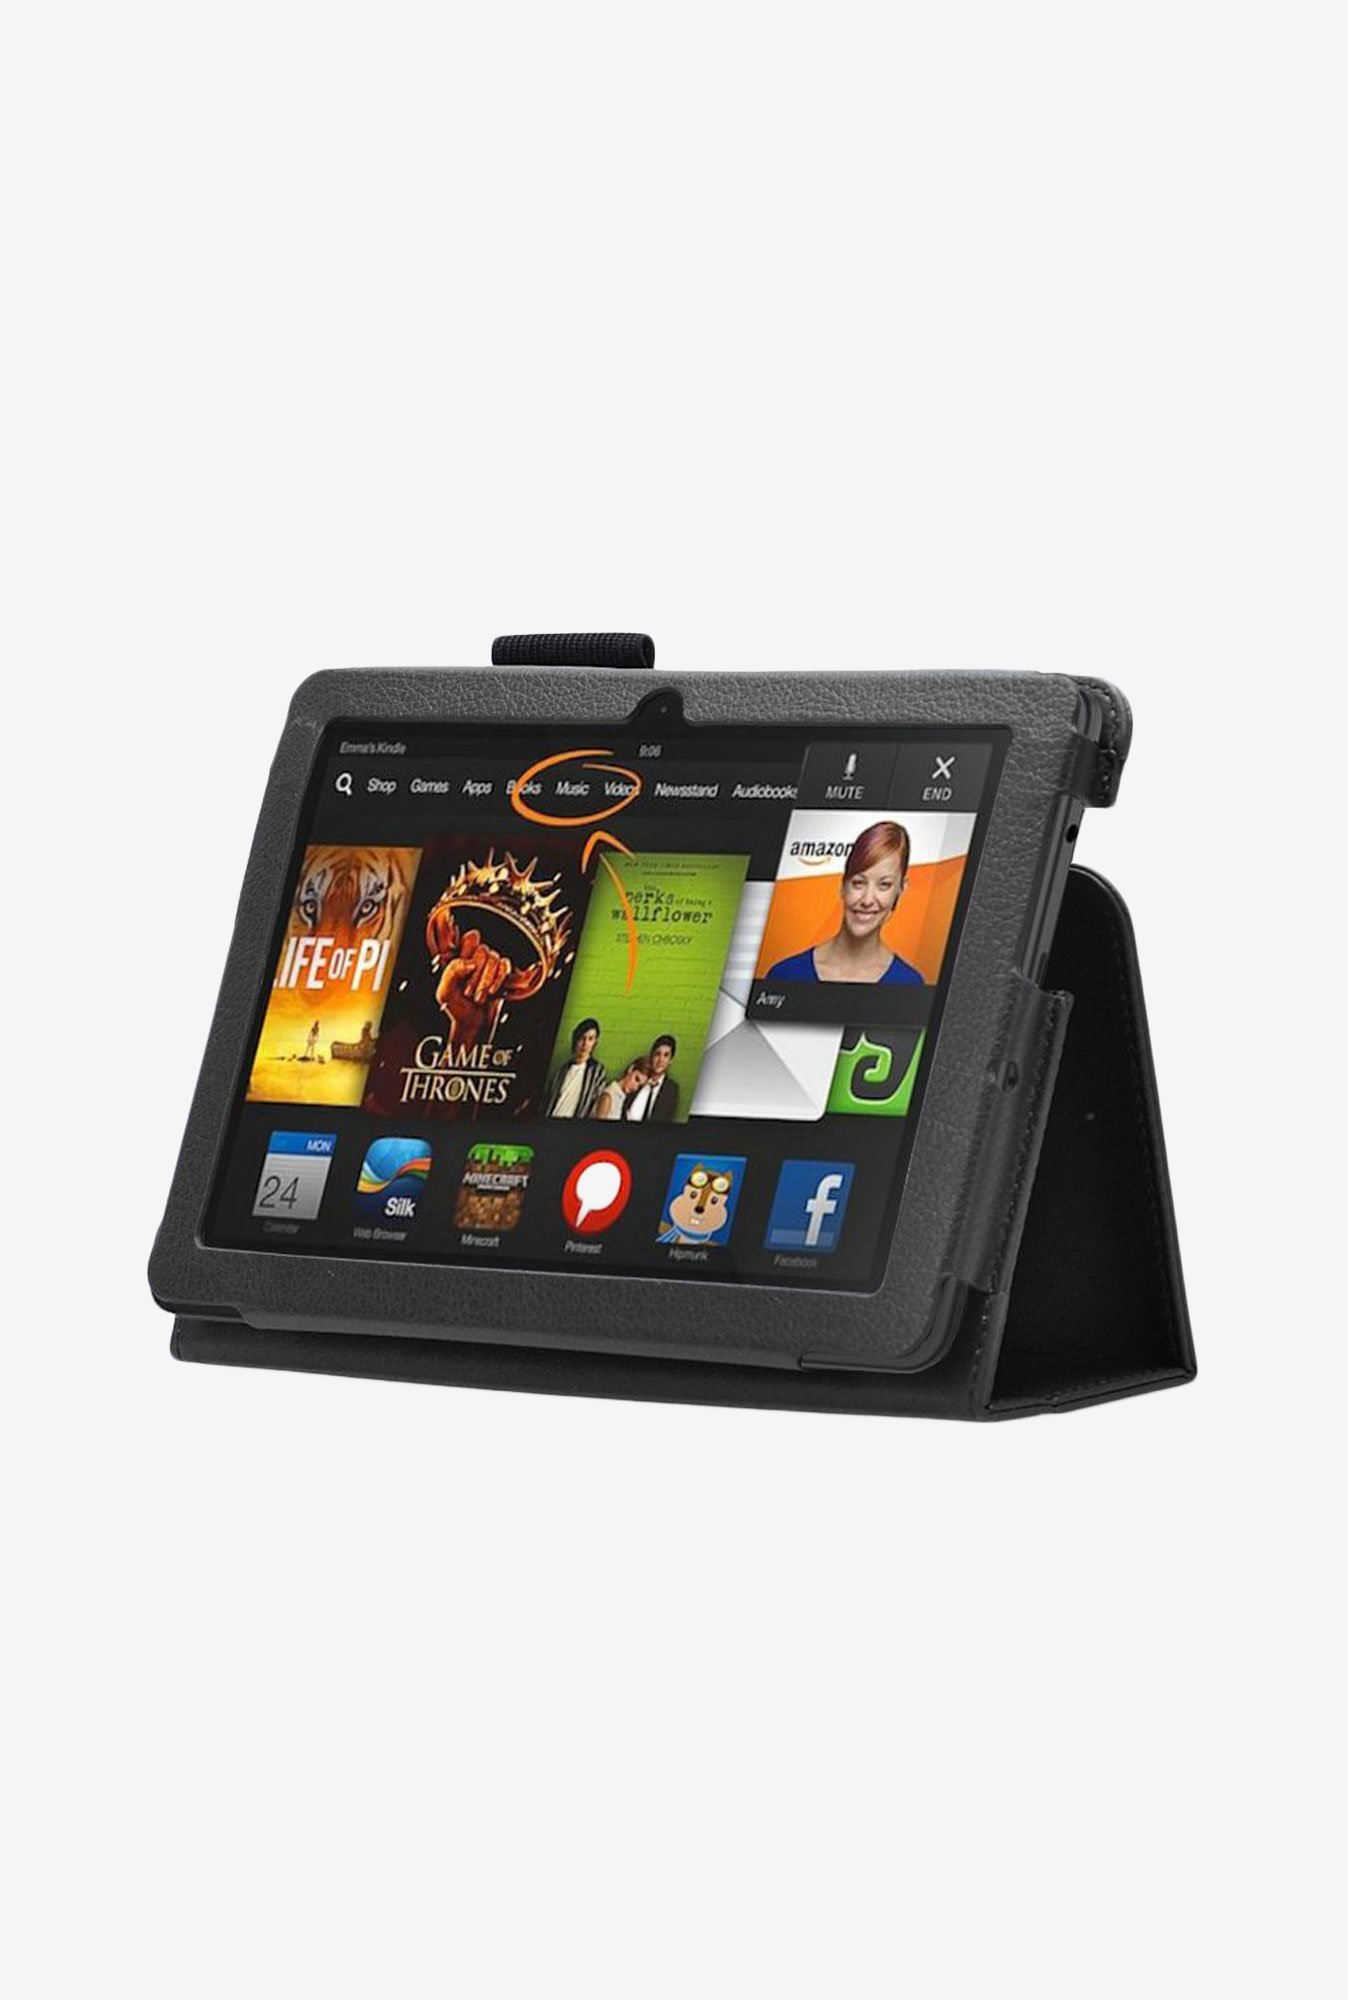 Manvex Leather Case for Amazon Kindle Fire HDX 8.9? (Black)